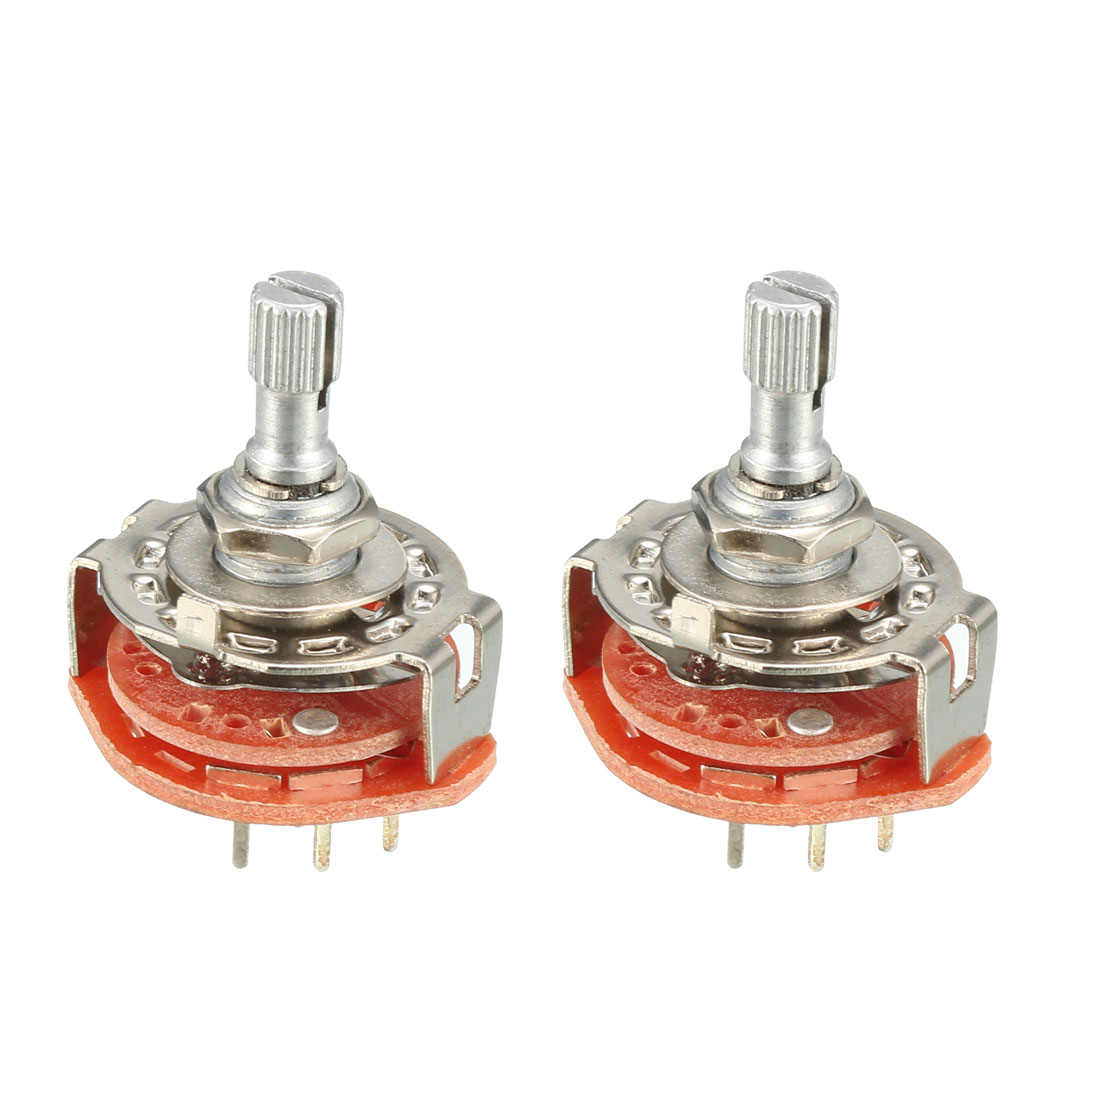 2Pcs 2P3T 2 Pole 3 Position 6mm Knurled Shaft Dia Band Selector Rotary Switch